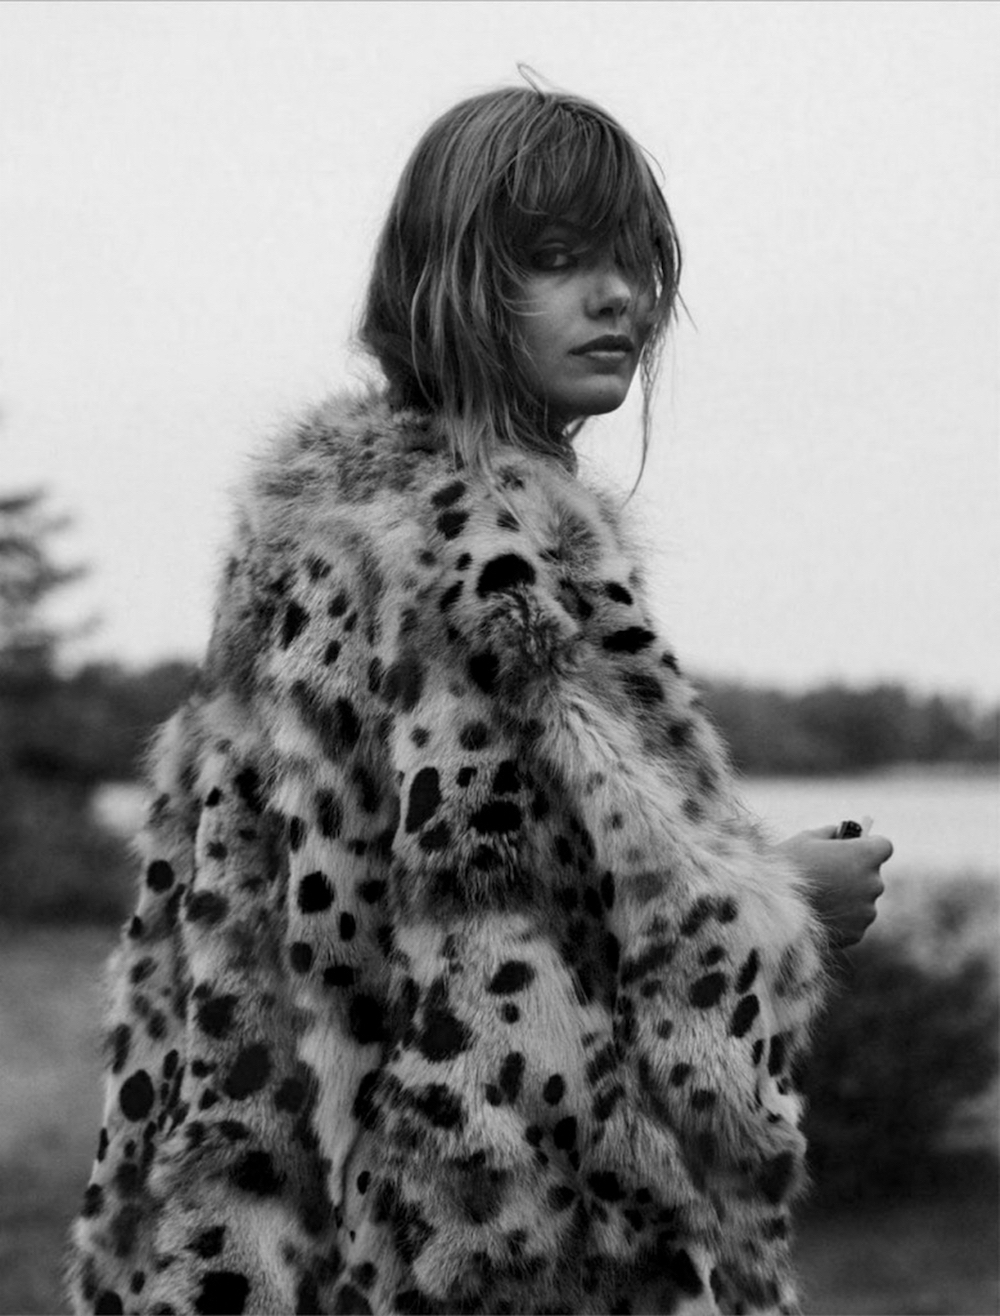 frida gustavsson, glamour magazine, glamour france, leopard, trend, oracle fox